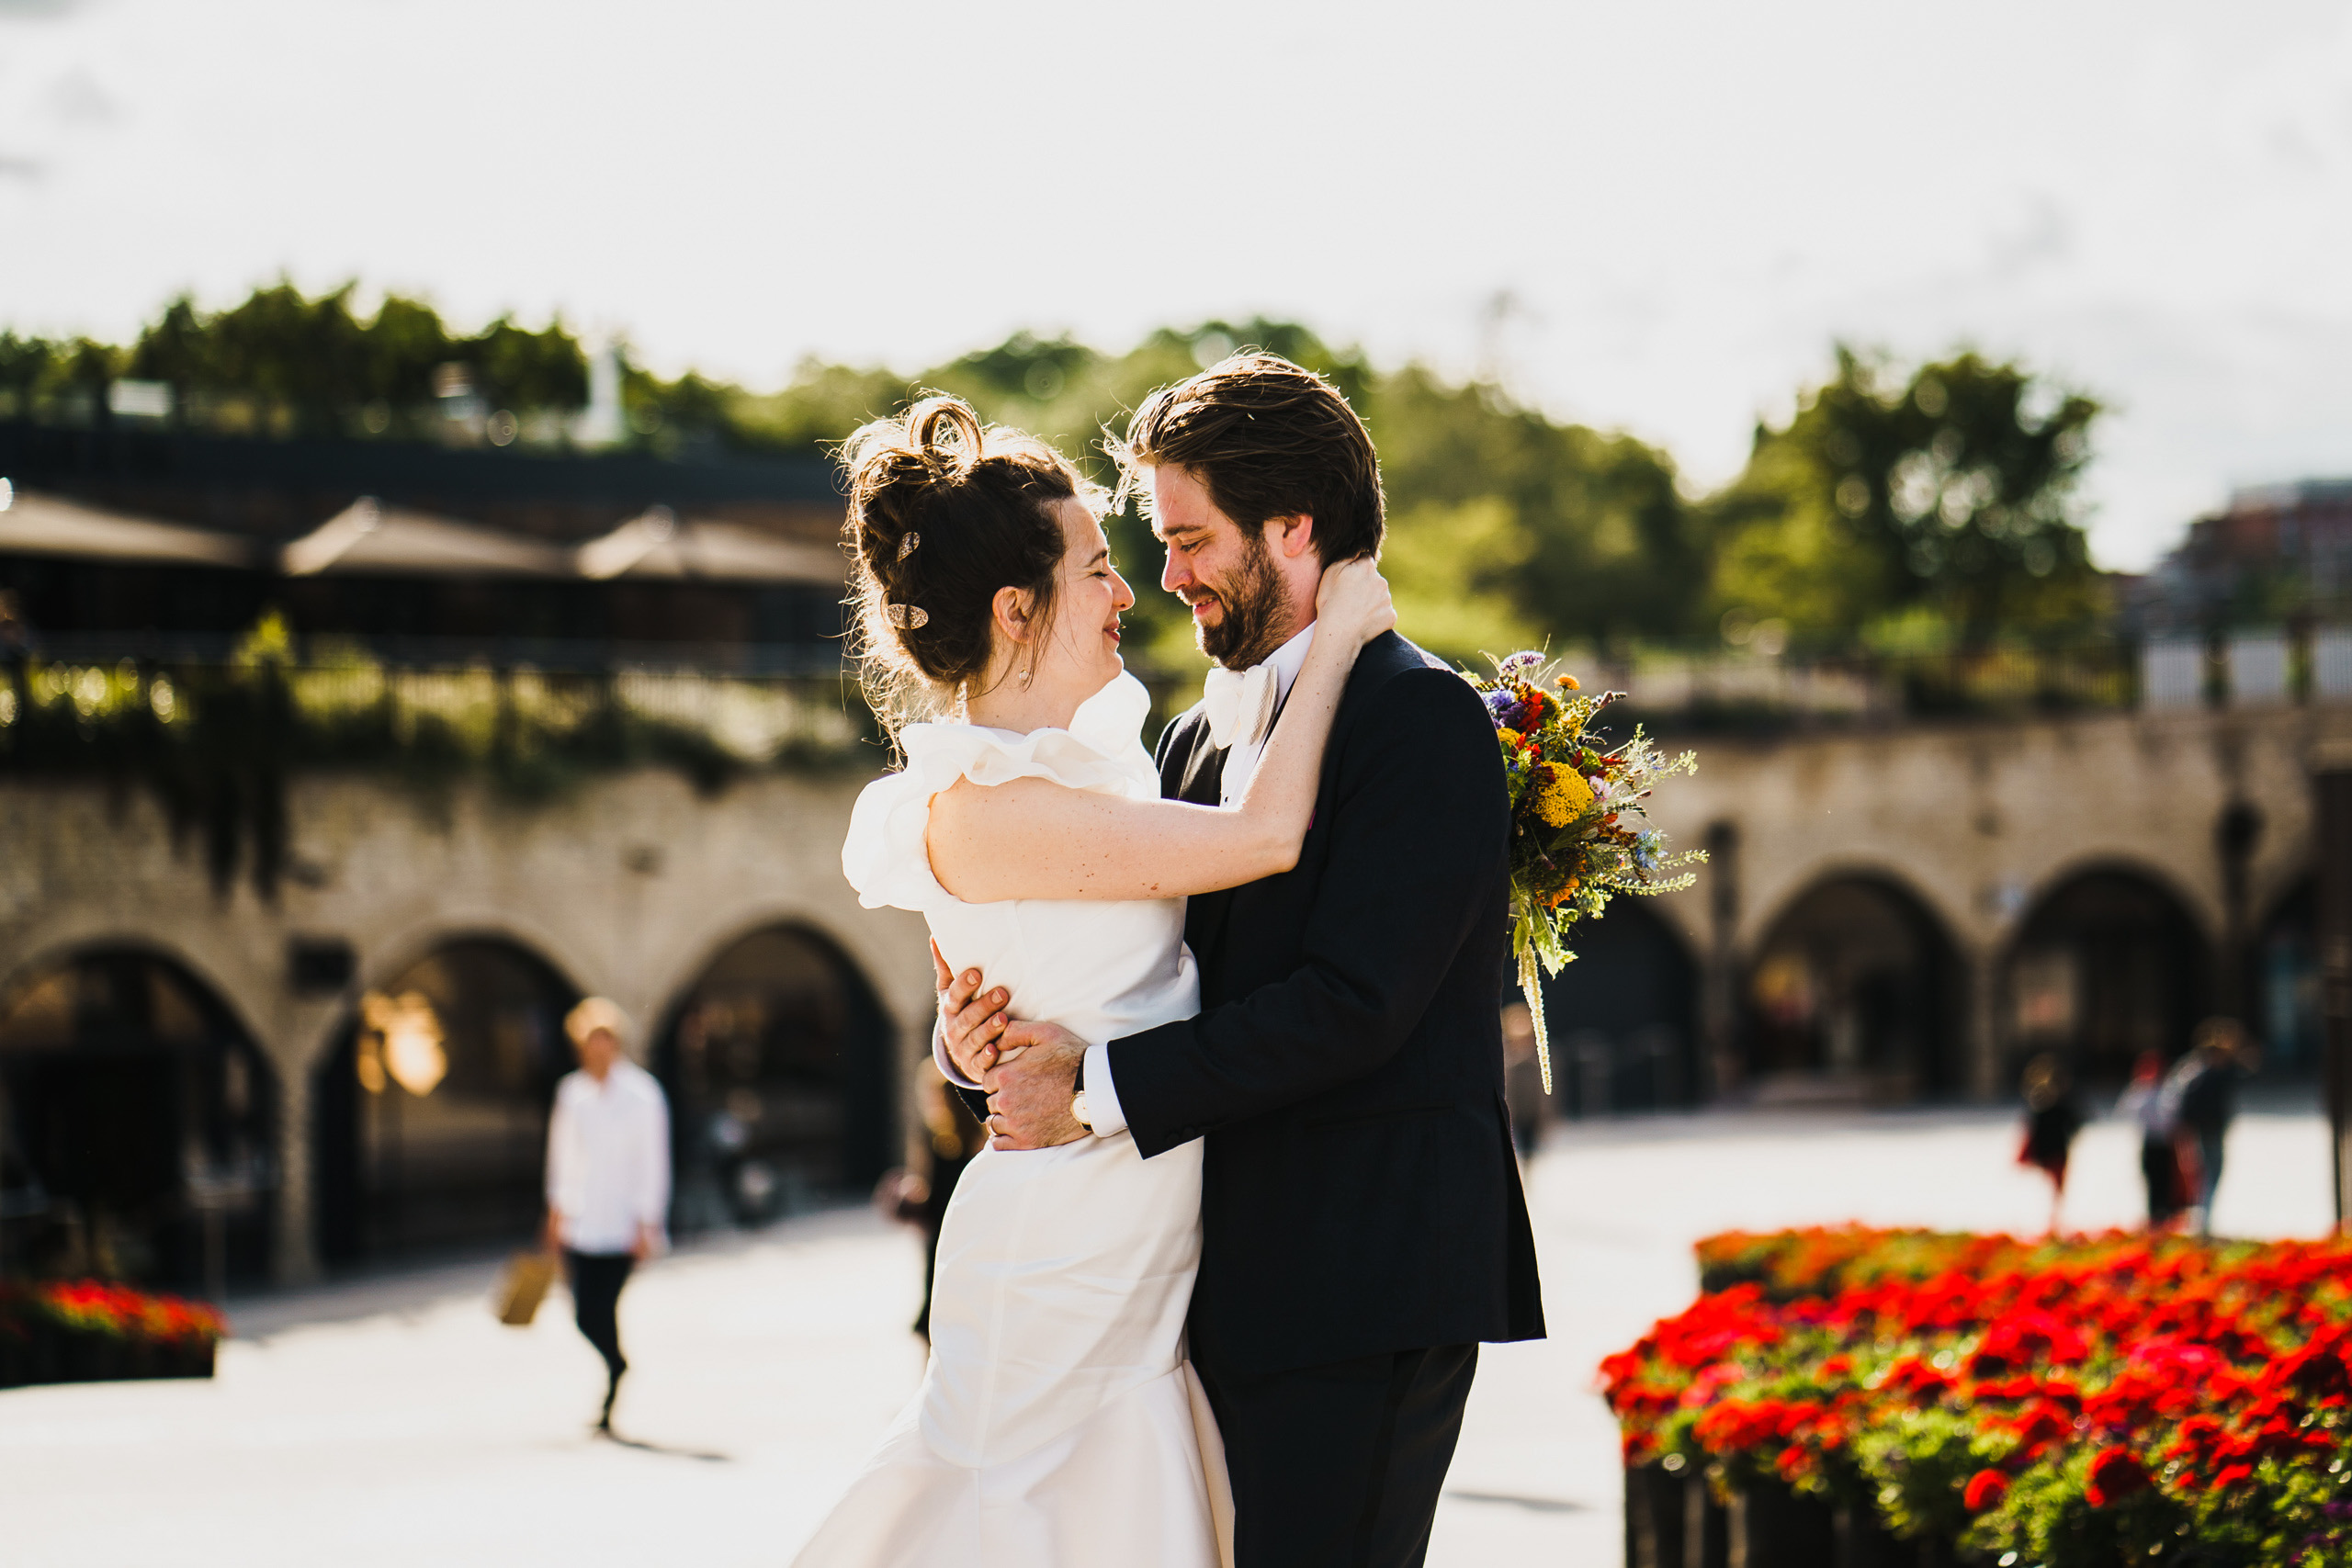 wedding photography at Coal Drops Yard